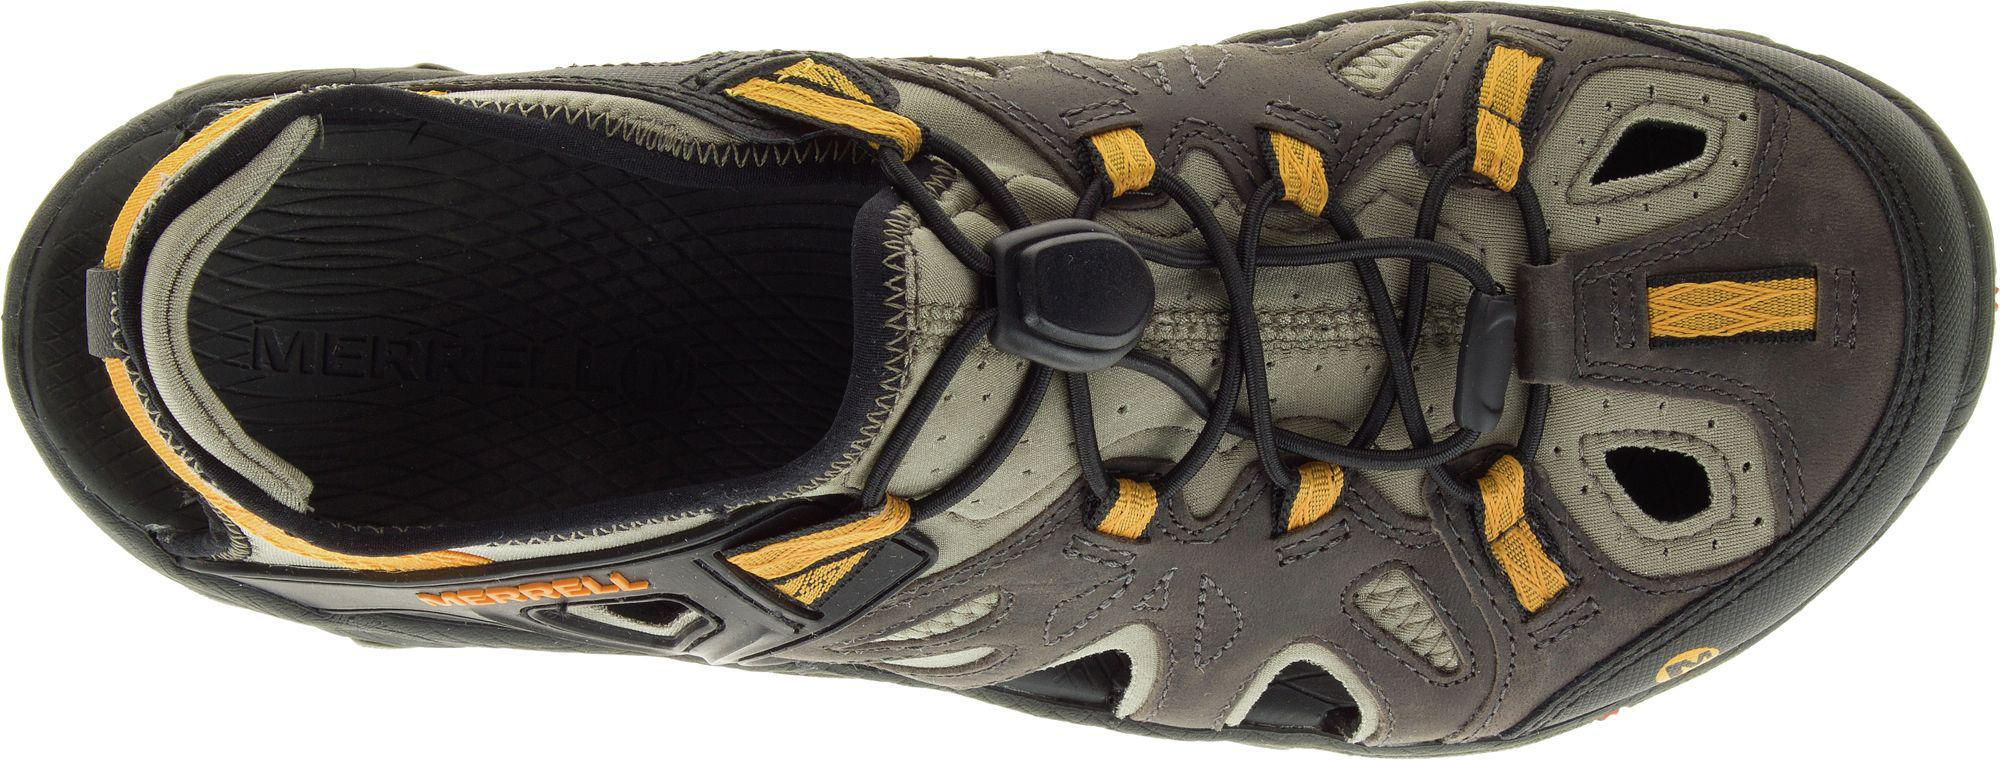 51956814c1fb Lyst - Merrell All Out Blaze Sieve Sandals in Gray for Men